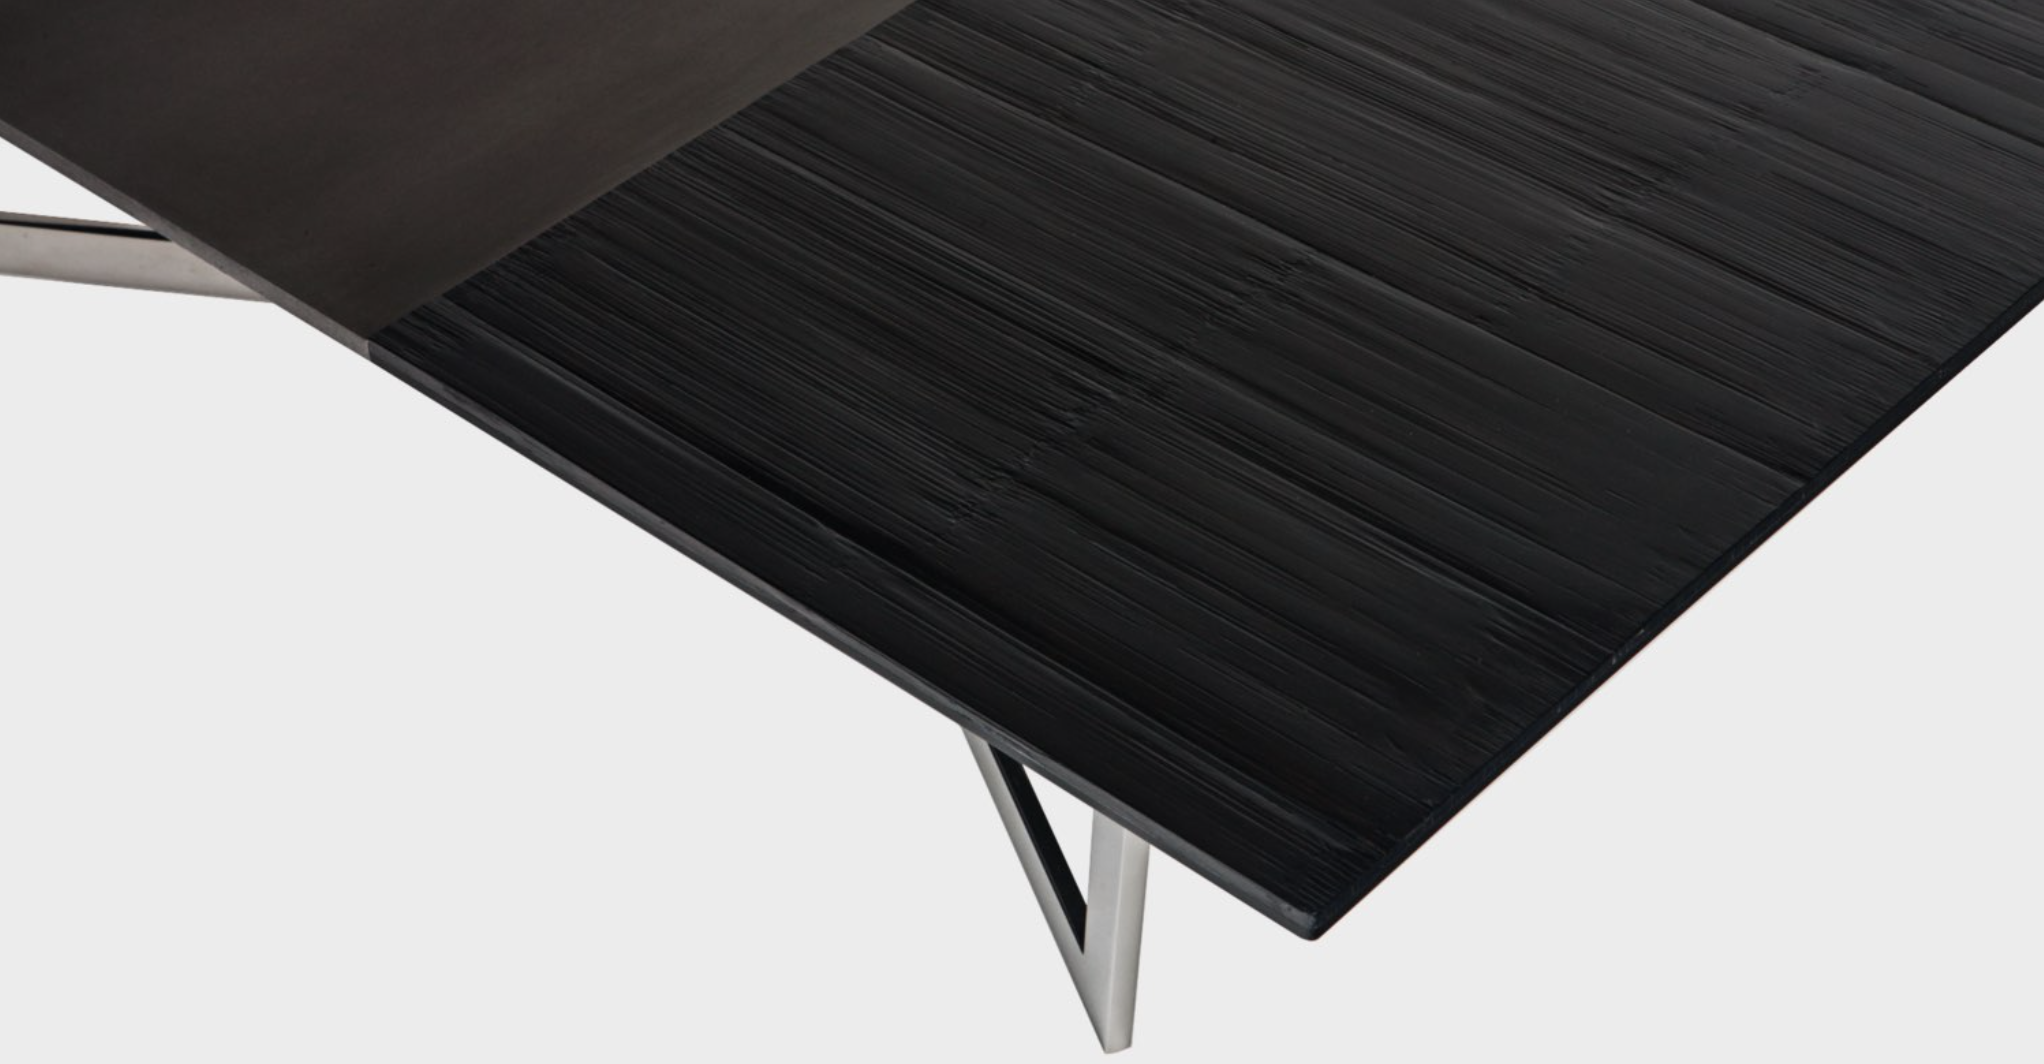 Aguirre Design - Madison Coffee Table - Bamboo, Blackened Steel and Polished Stainless Steel